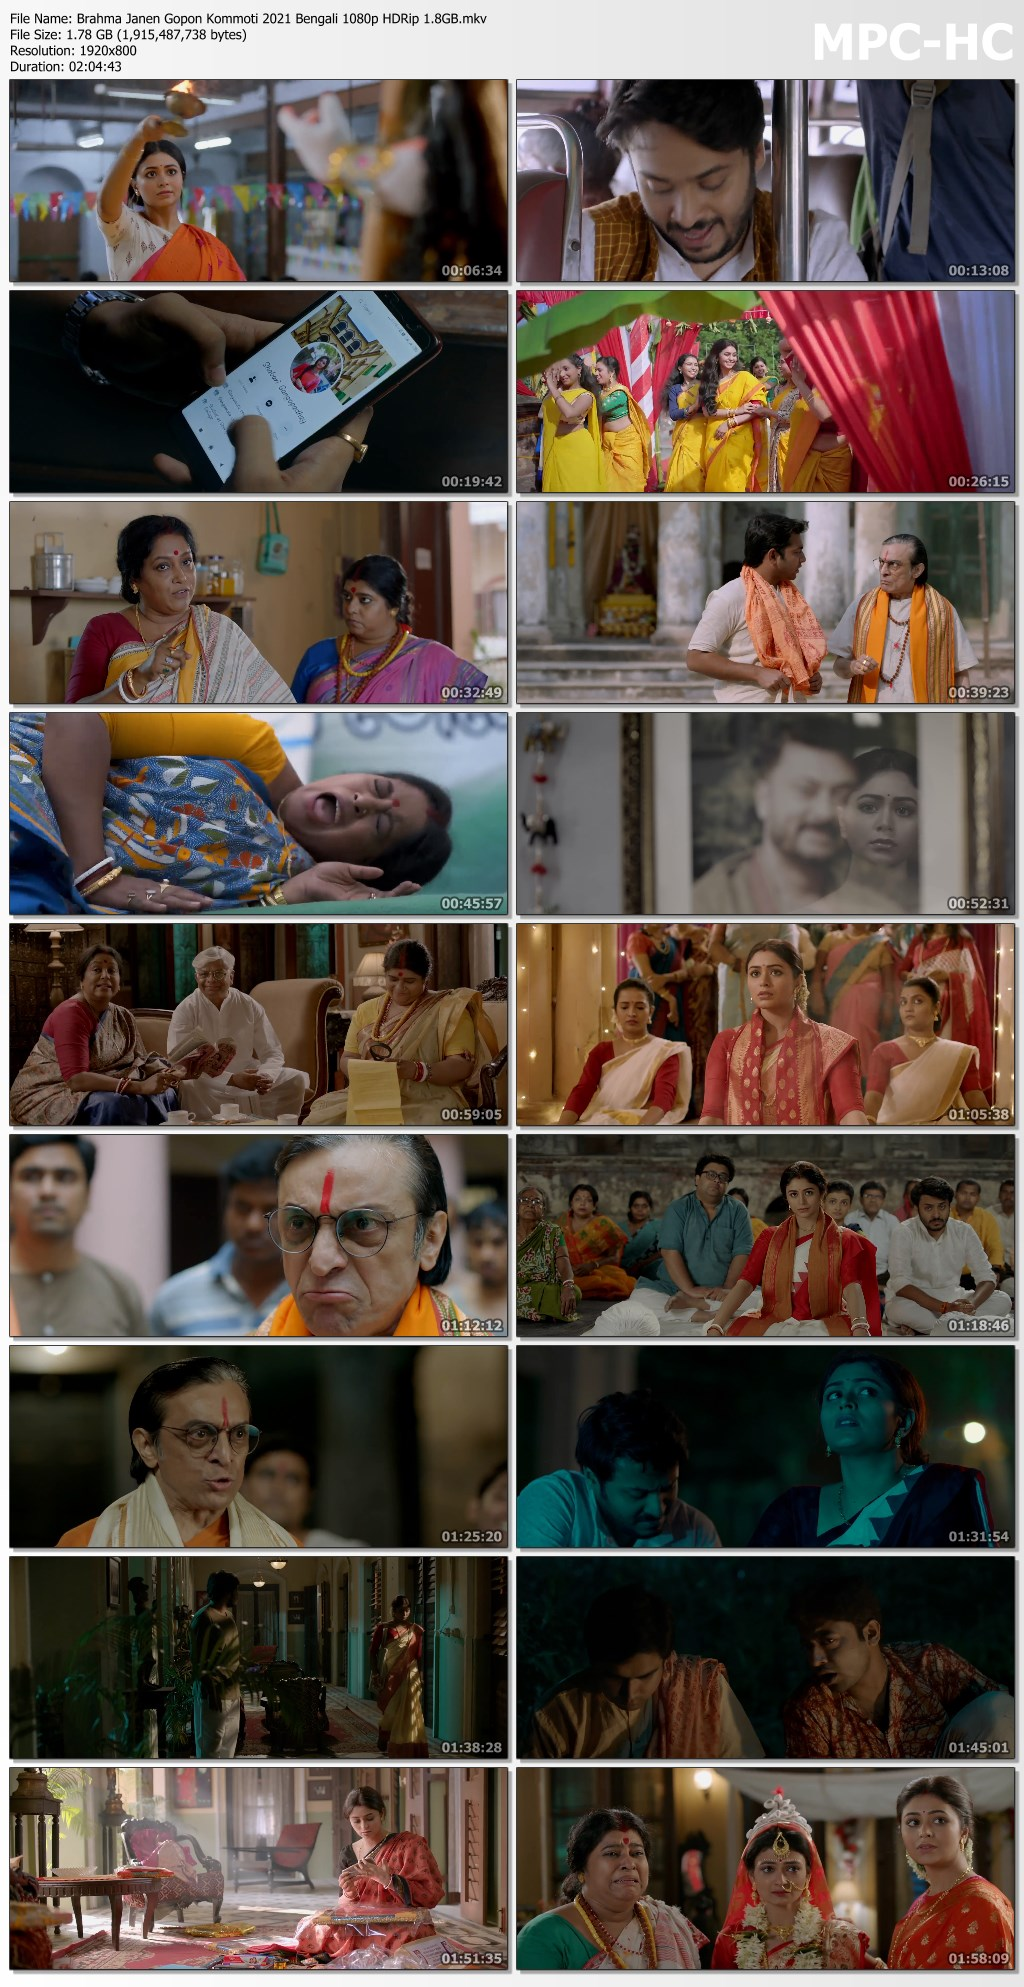 Brahma Janen Gopon Kommoti 2021 Bengali 1080p HDRip 1.8GB.mkv thumbs